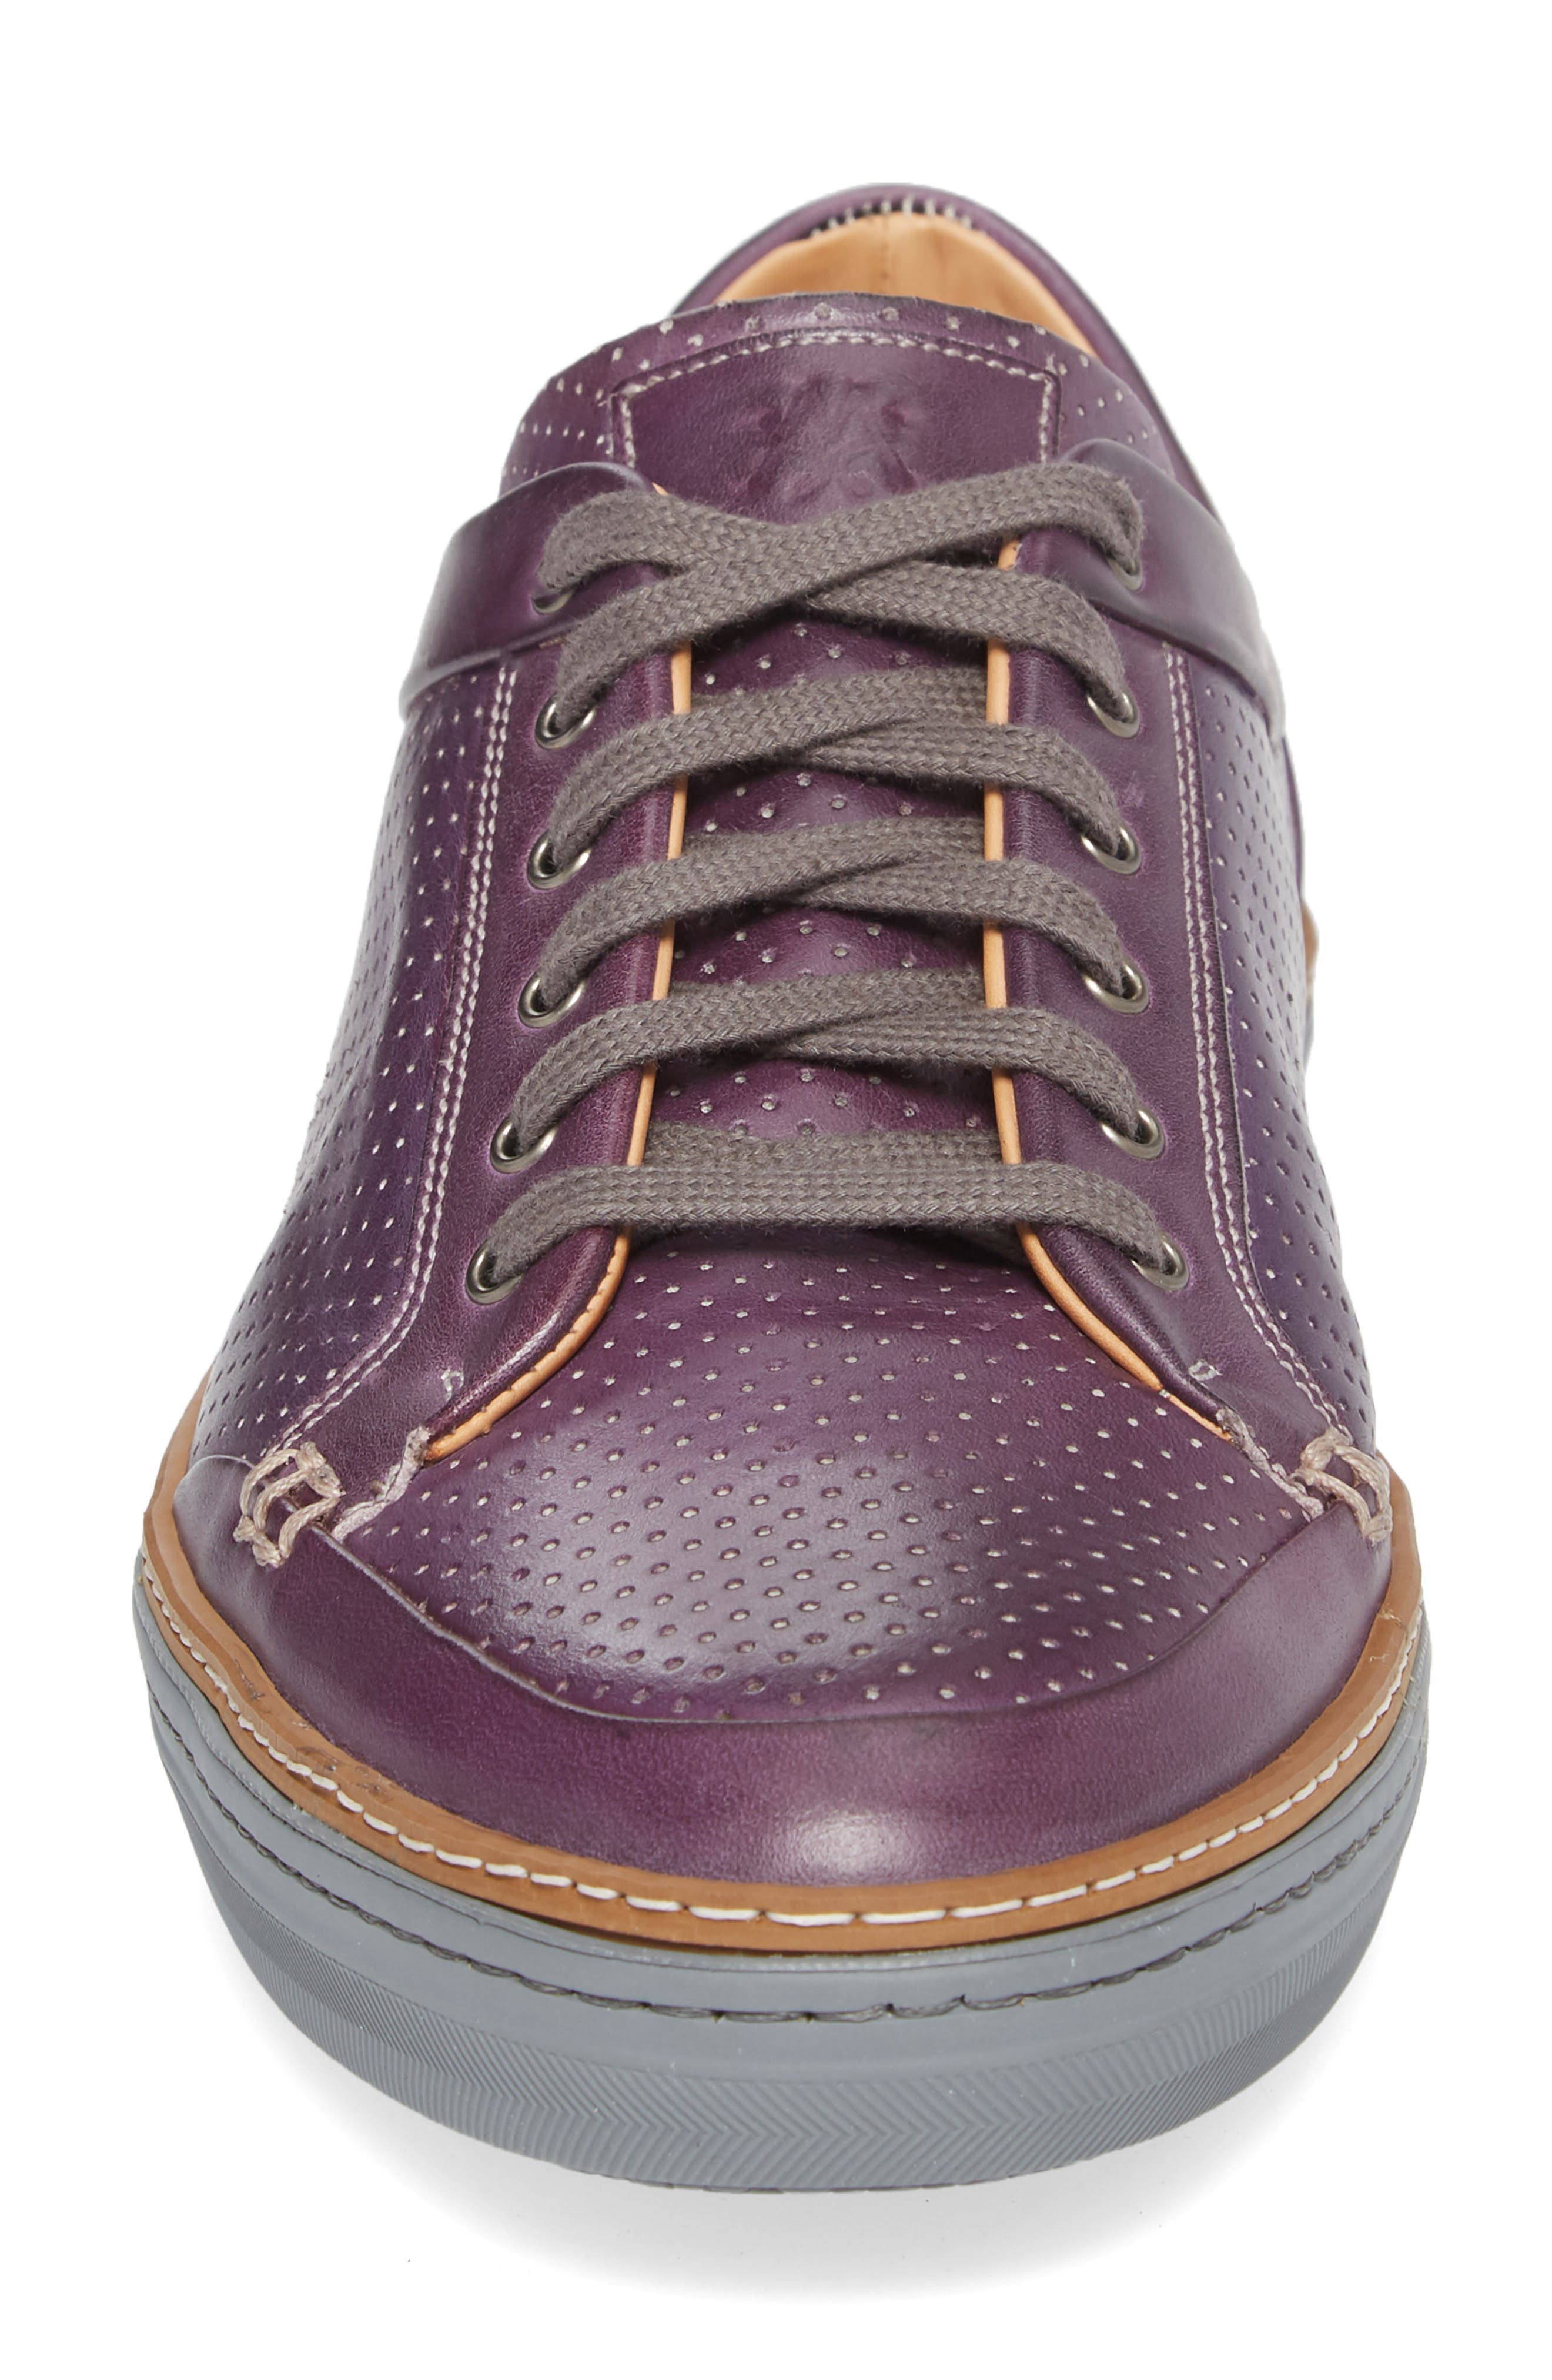 Ceres Perforated Low Top Sneaker,                             Alternate thumbnail 4, color,                             PURPLE LEATHER